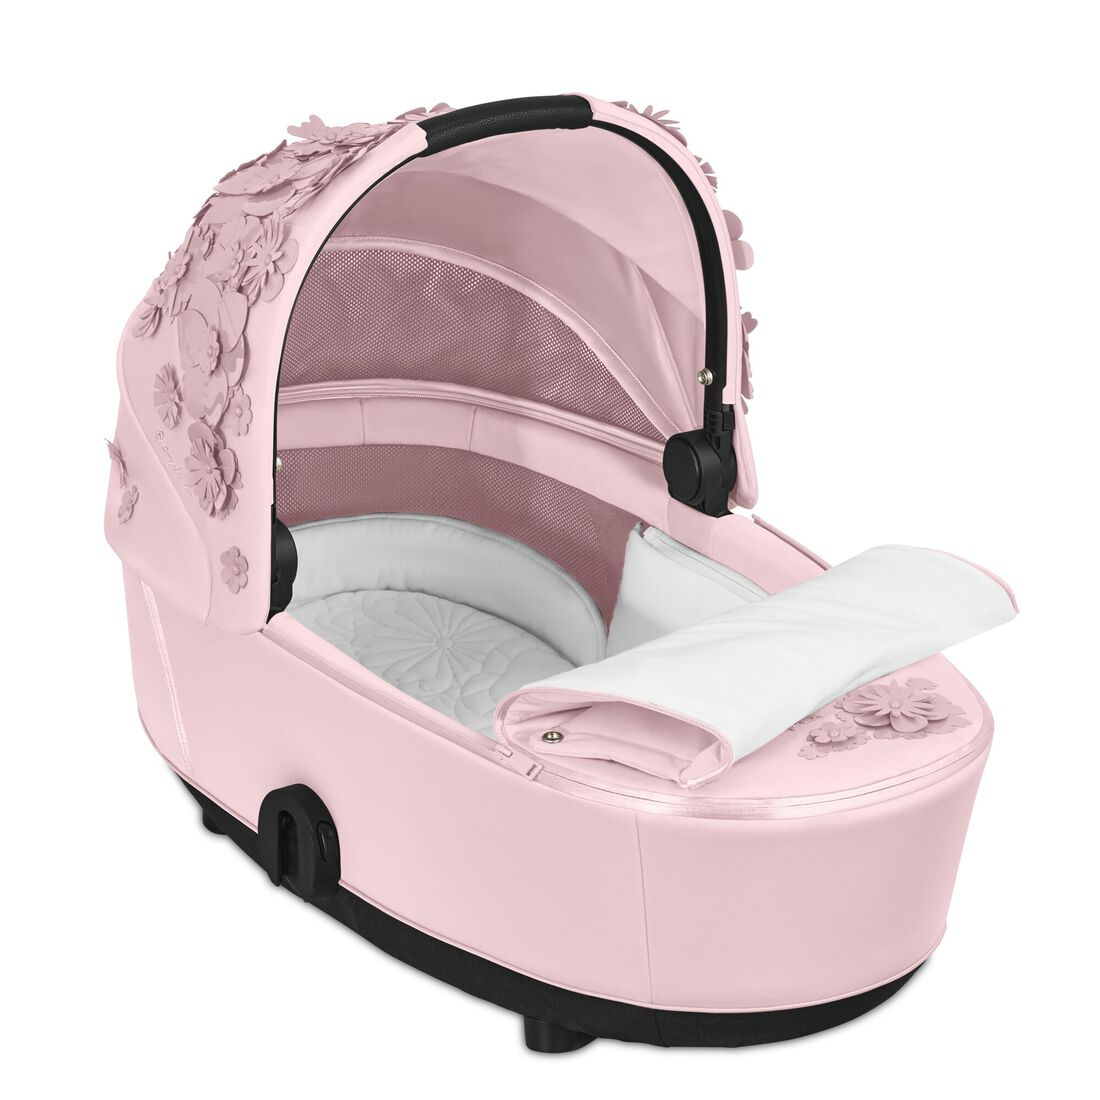 CYBEX Mios Lux Carry Cot - Pale Blush in Pale Blush large Bild 2